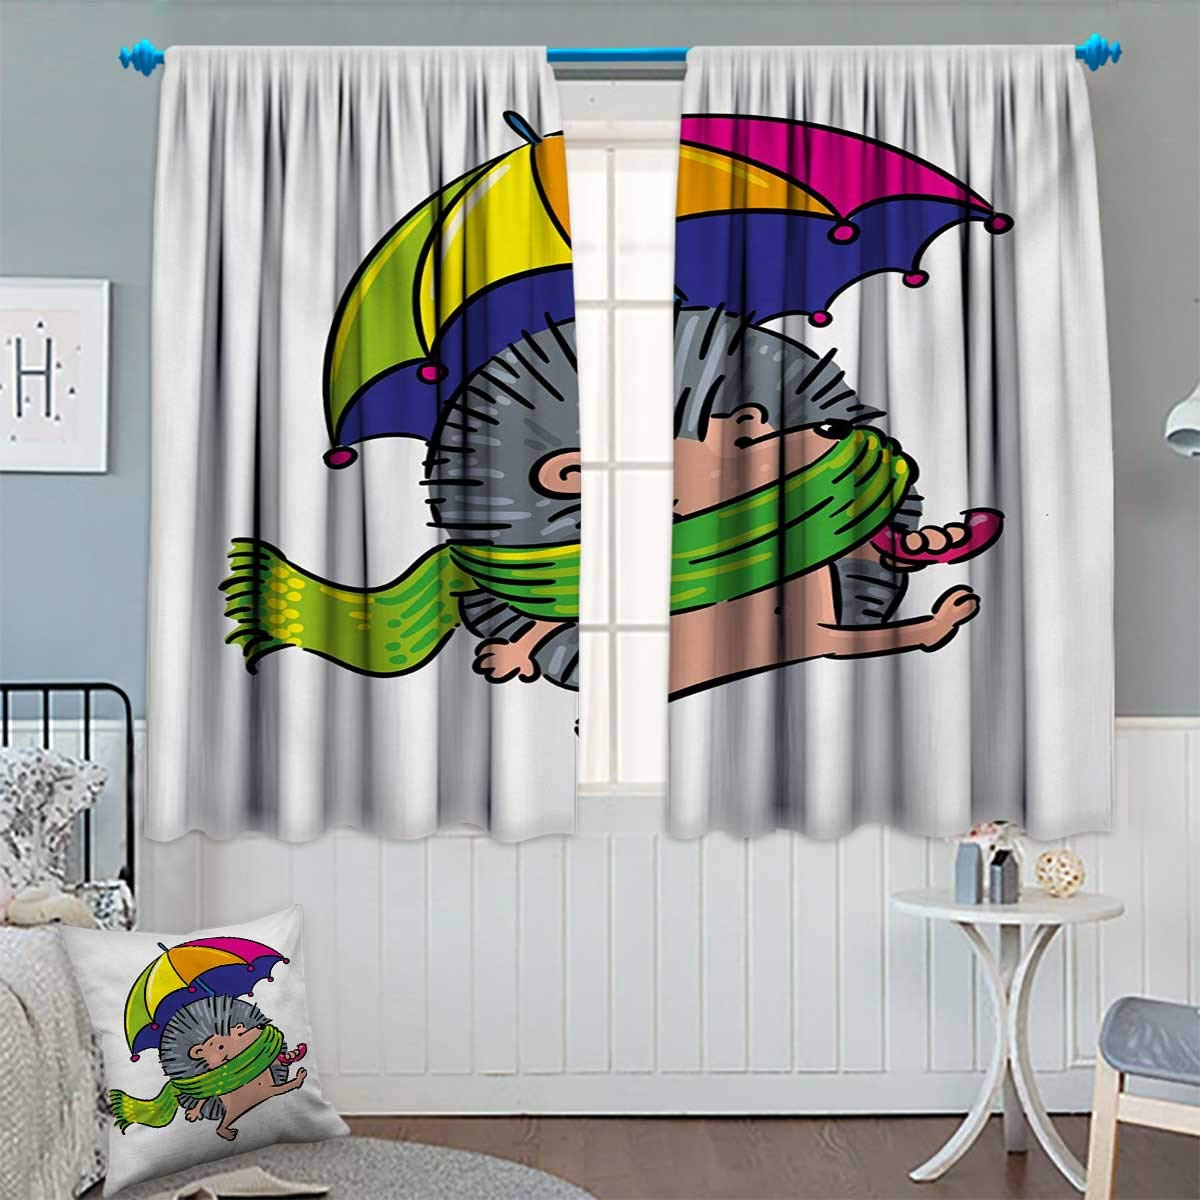 """Chaneyhouse Hedgehog Waterproof Window Curtain Smiling Animal with Spikes and Scarf Rainbow Colored Umbrella Walking Winter Theme Blackout Draperies for Bedroom 63"""" W x 63"""" L Multicolor"""